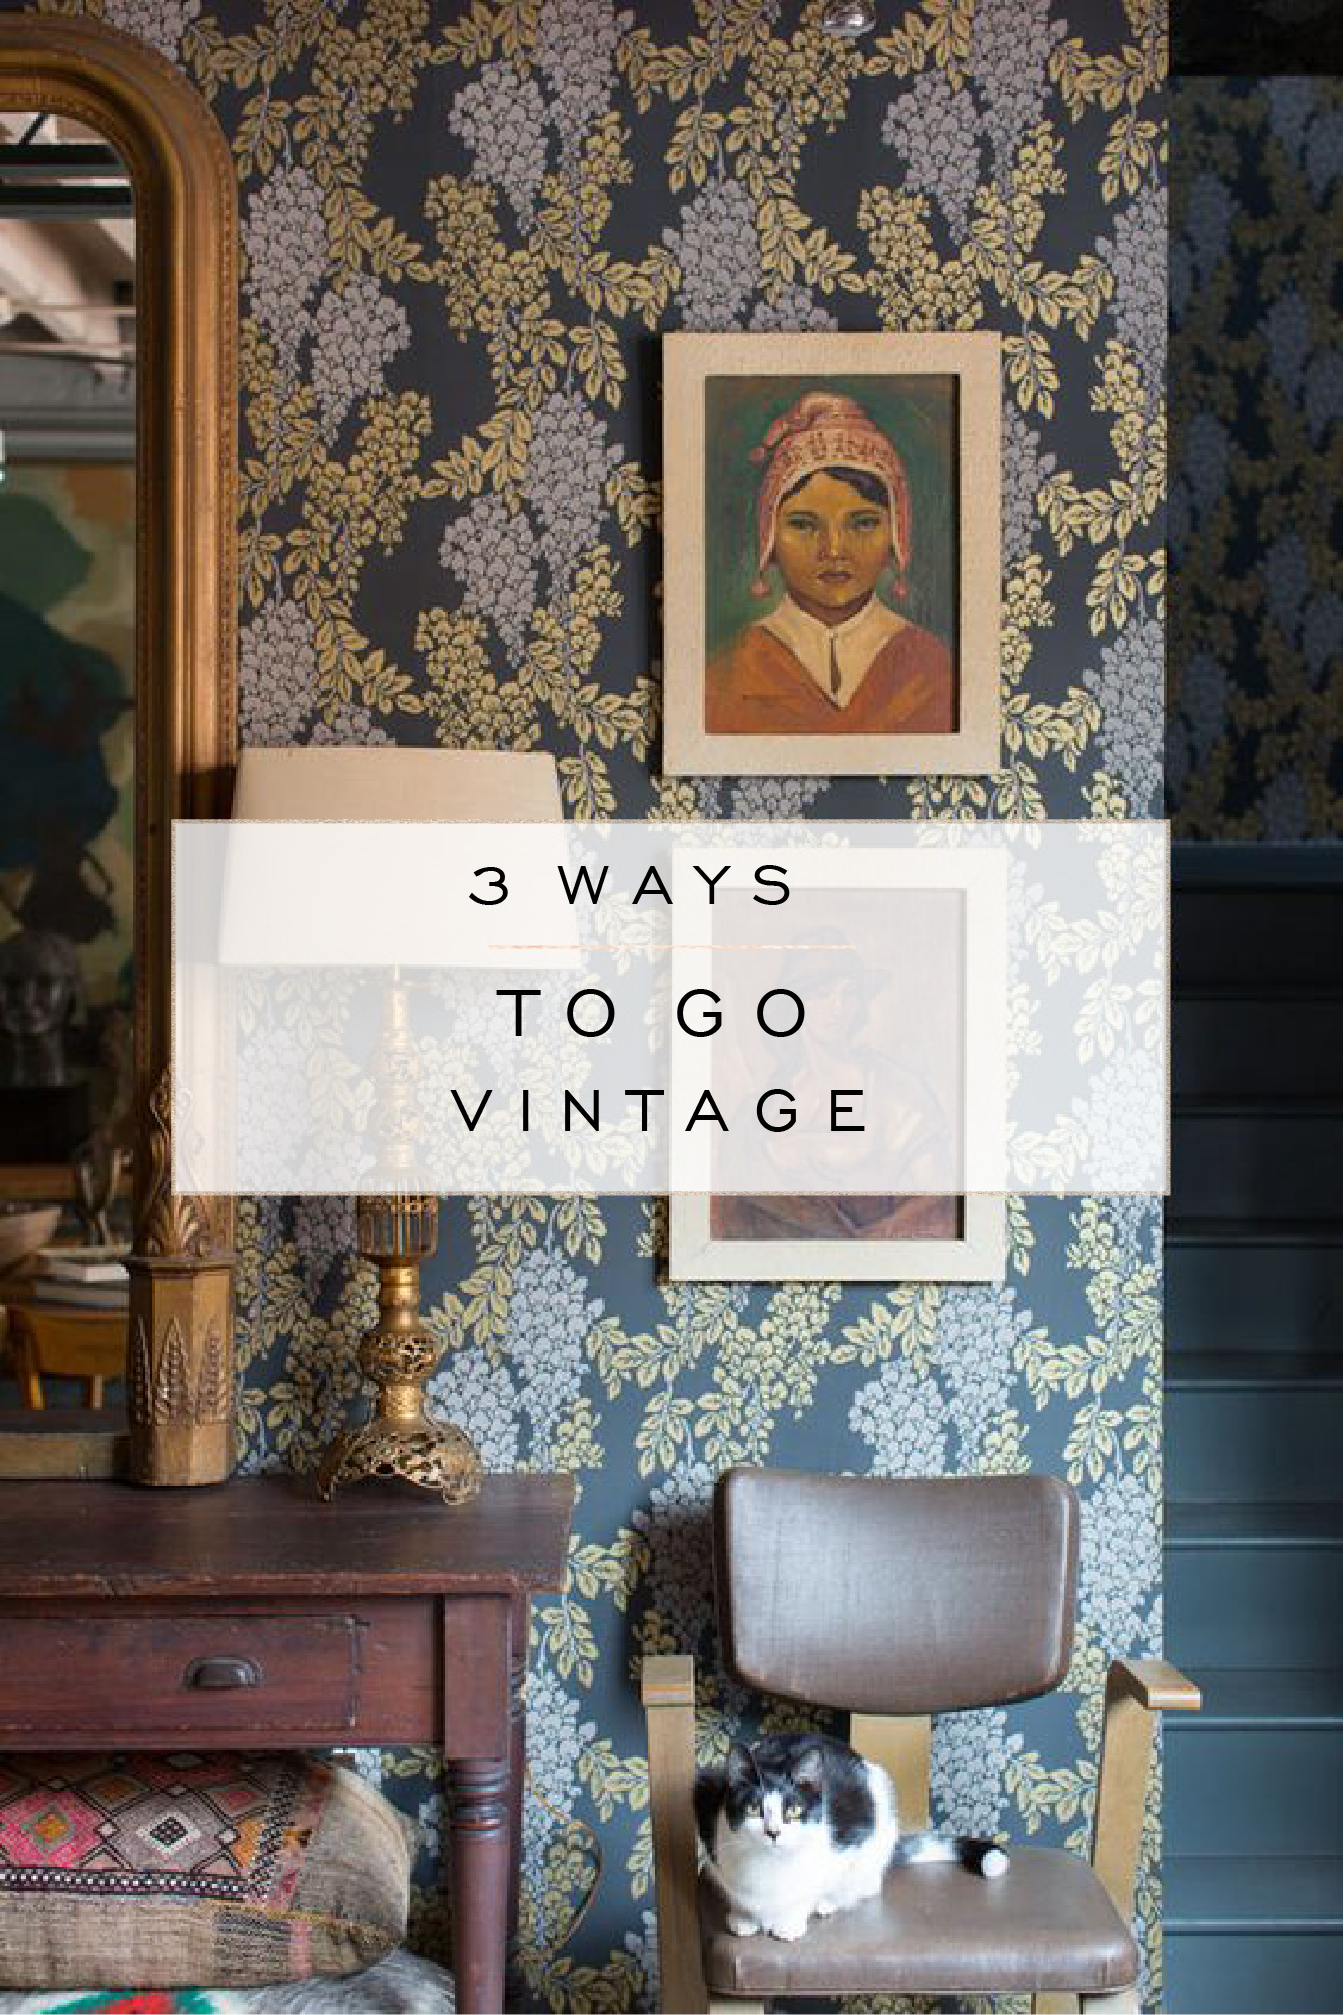 3 ways to go vintage